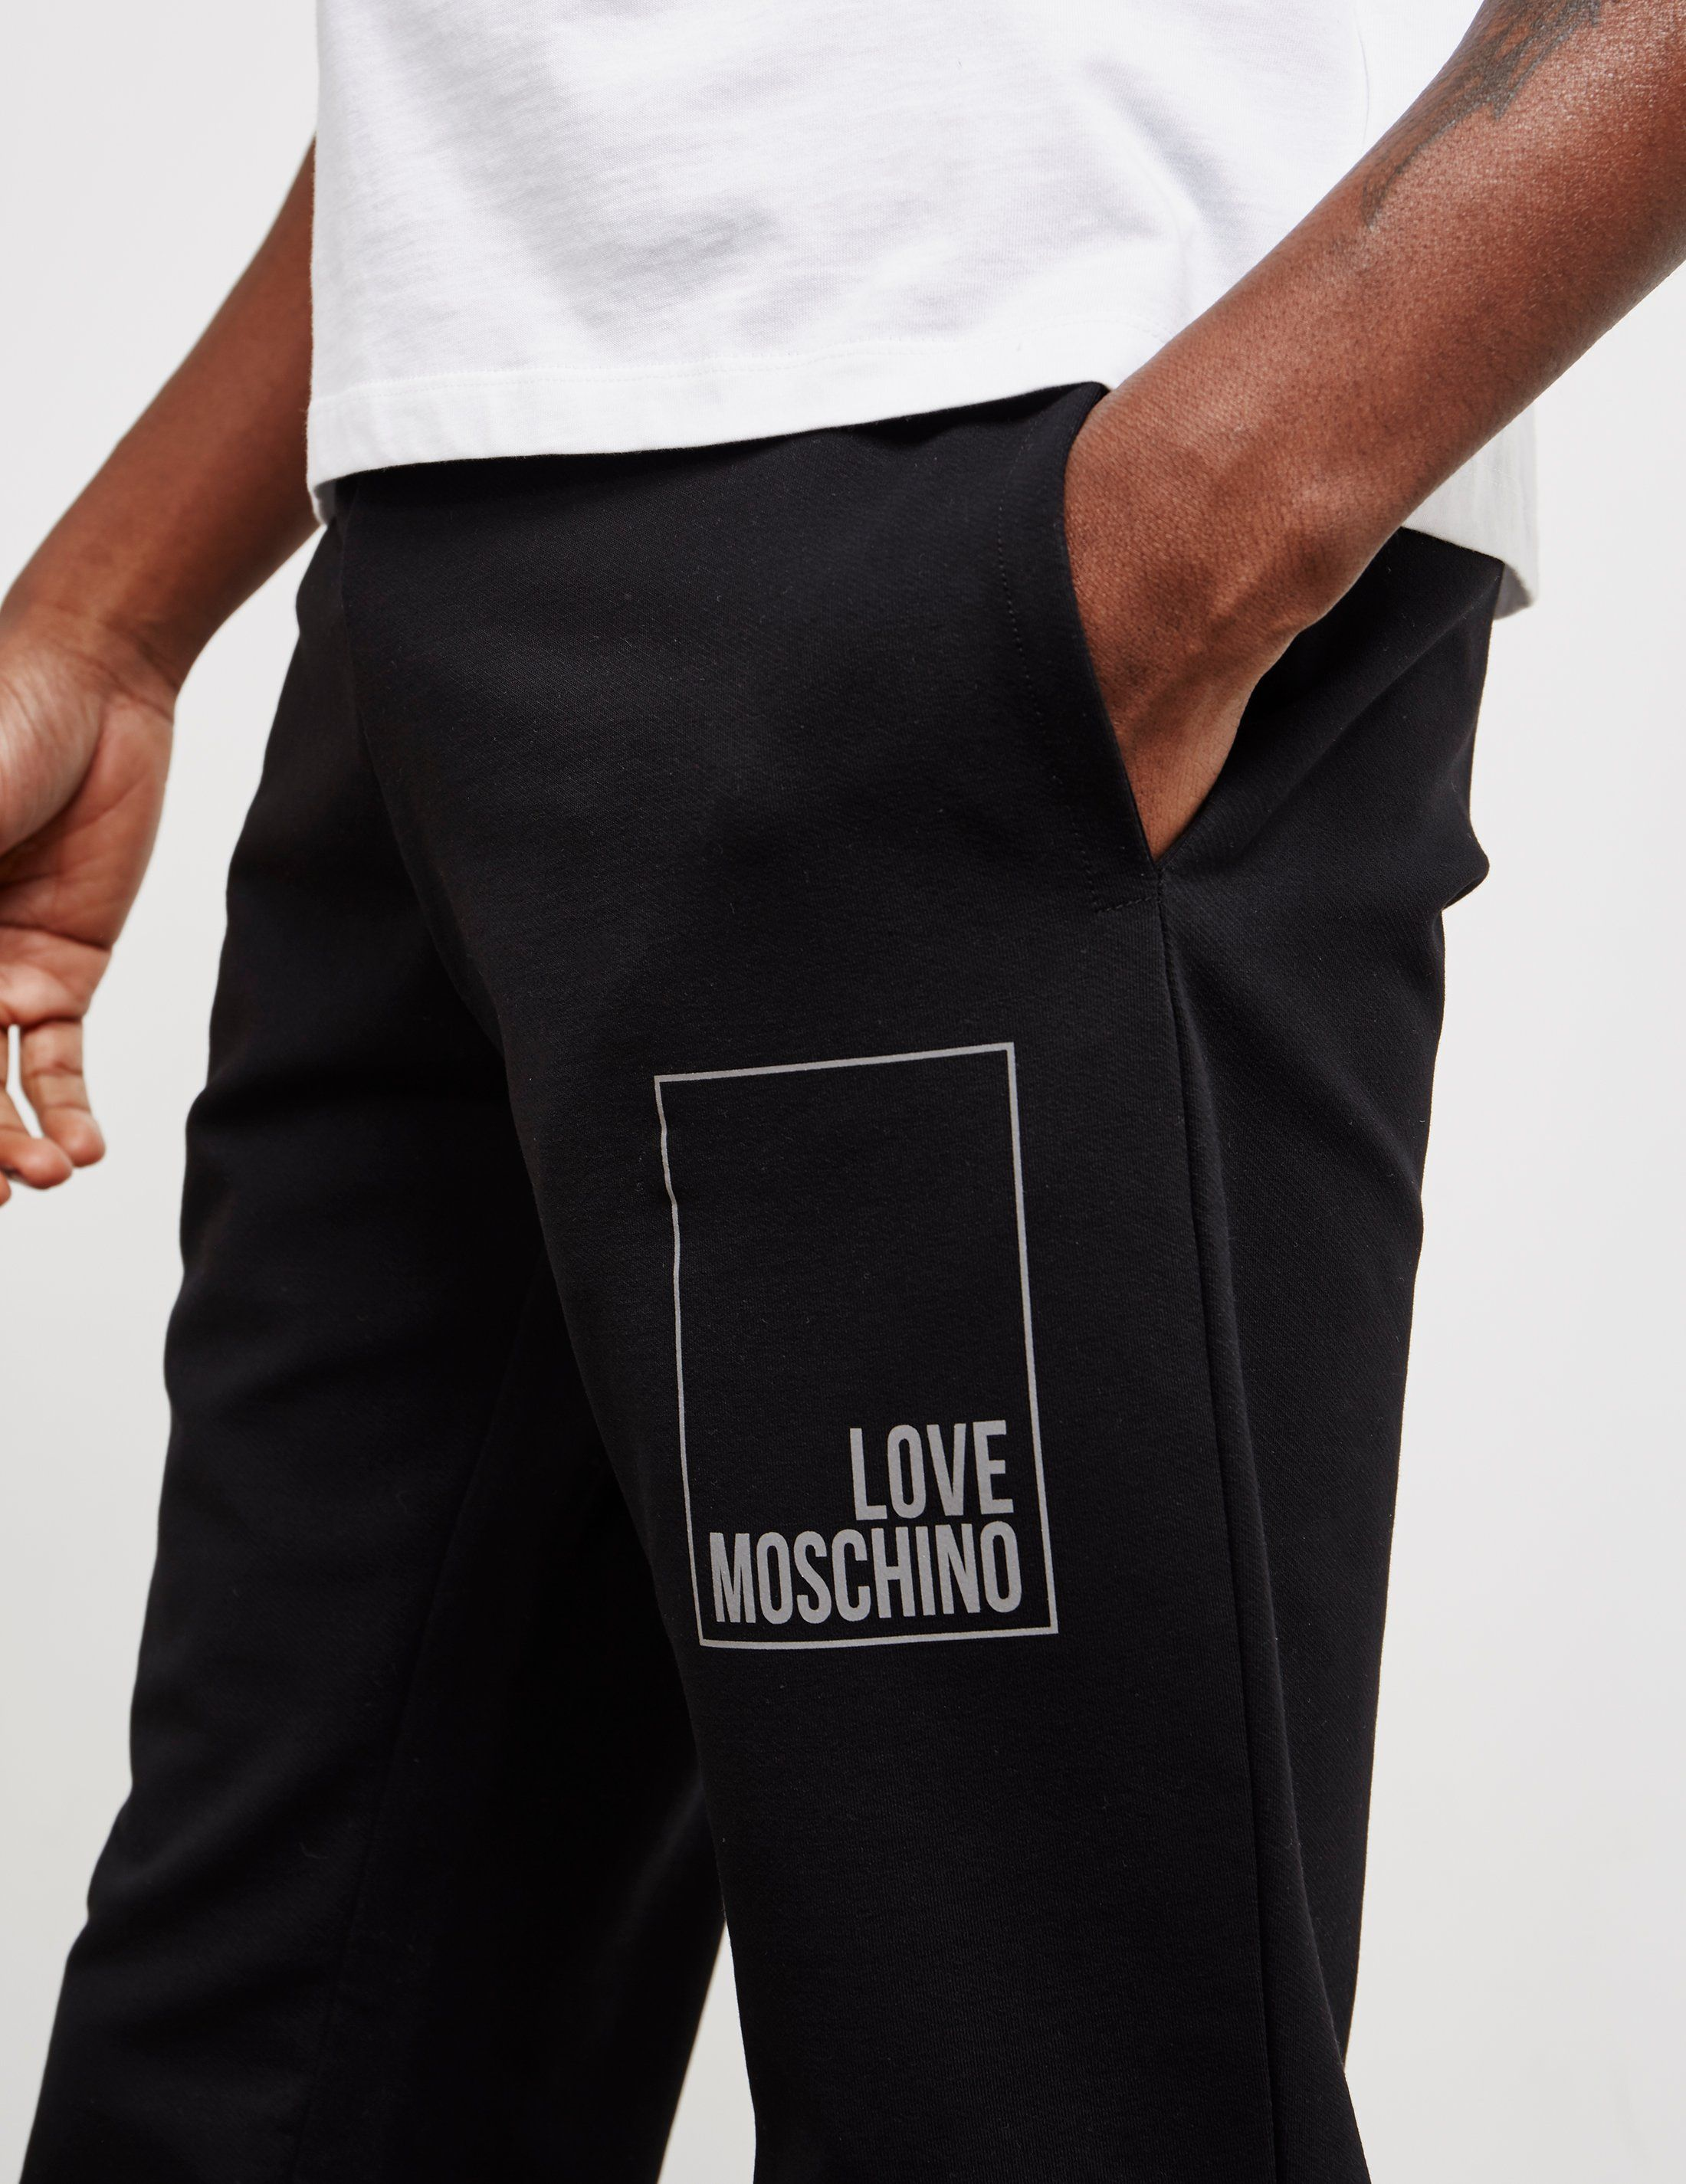 Love Moschino Reflective Box Track Pants